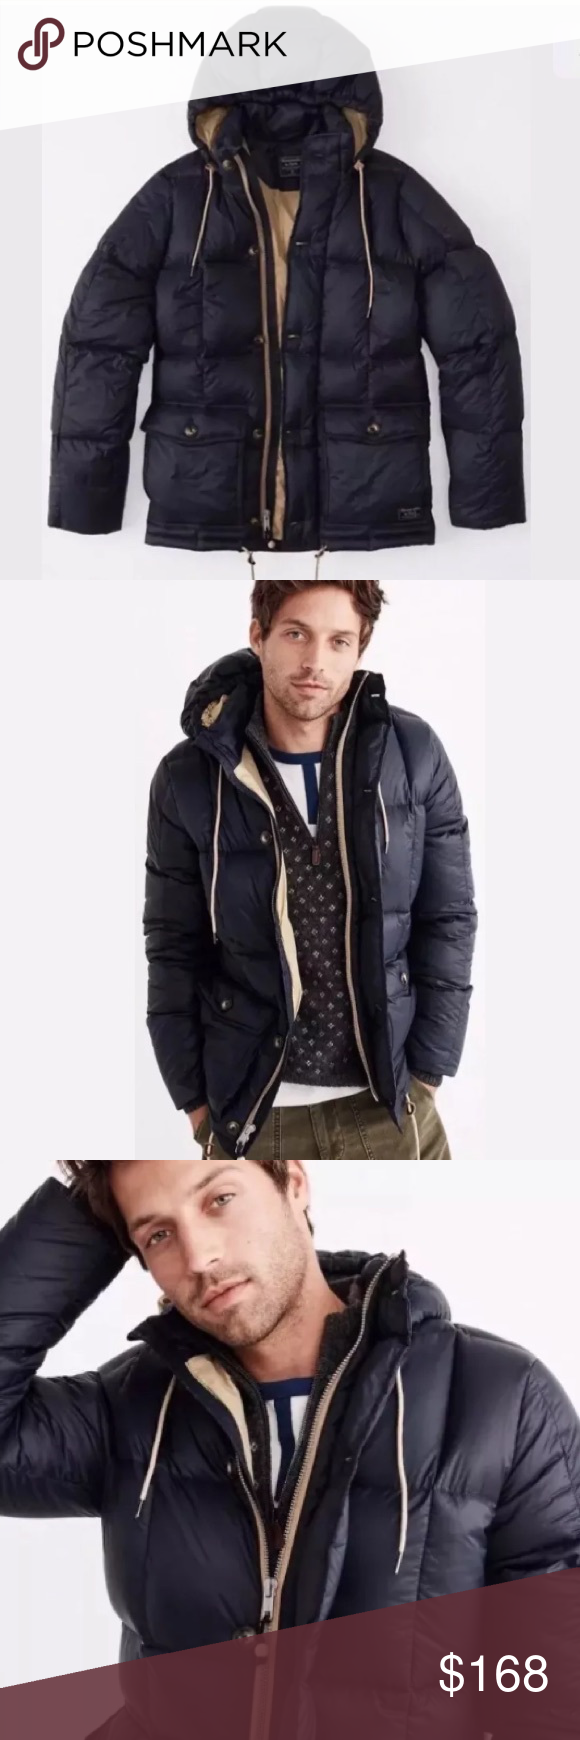 Abercrombie Blue Men S Heavy Hood Puffer M Jacket Brand New With Tags Purchased Directly From Abercr Jacket Brands Clothes Design Abercrombie And Fitch Jackets [ 1740 x 580 Pixel ]